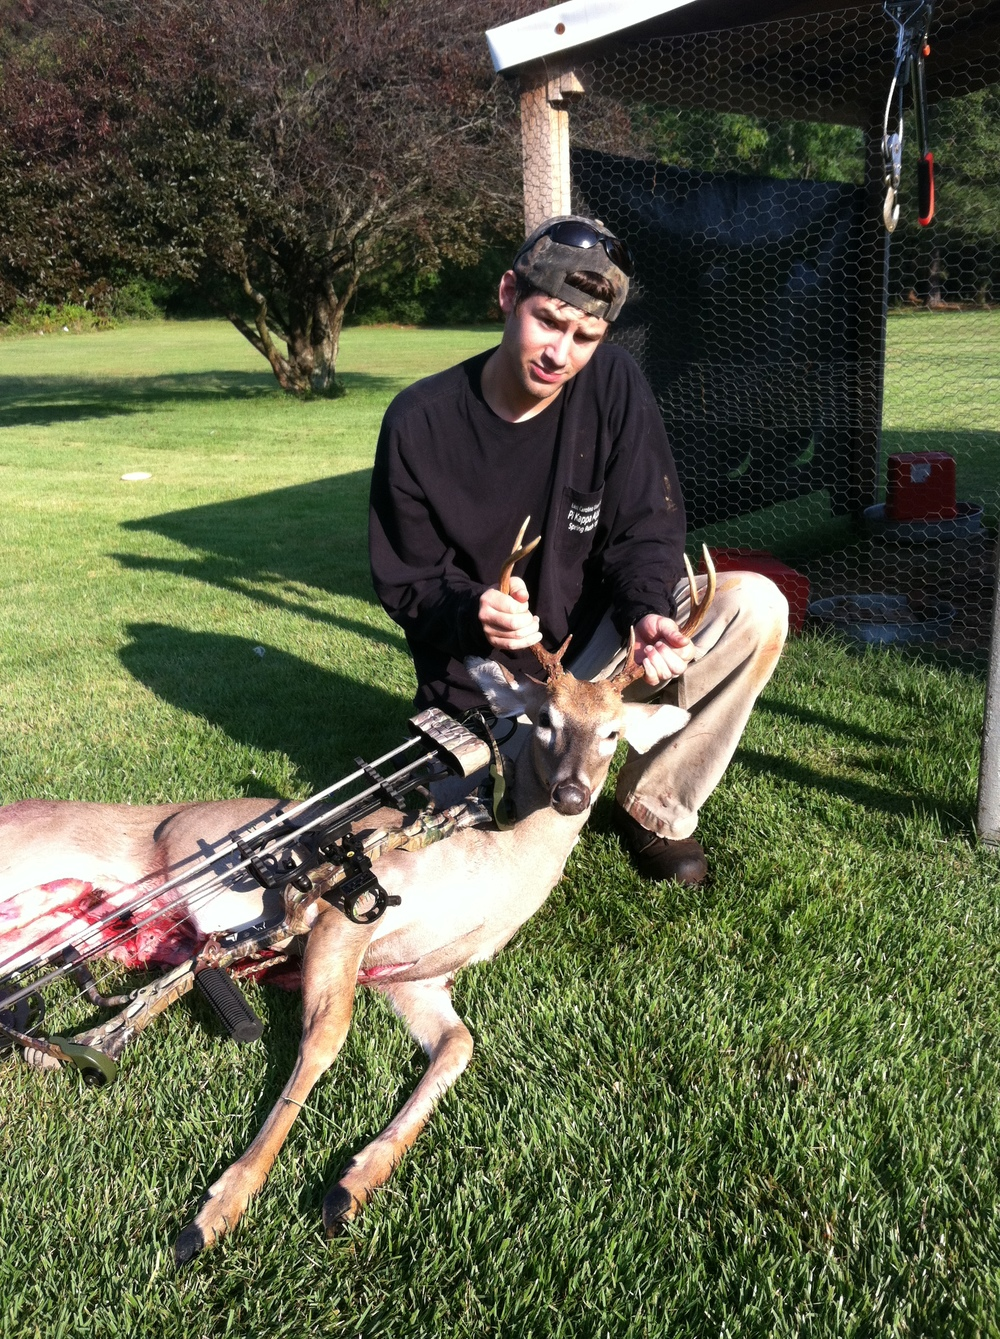 Example of bad photo  – This was my first bow kill, before I knew how to take a good photo. A chicken coop in the back ground? My butt isn't on the ground, I'm not wearing what I hunted in. Camera level too high. You can also see I have already gutted the animal and used my bow to try and cover it up, in turn, coving up the animal. My hands are in a poor position covering up the rack of my small, but first bow kill ever. A photo memory not really worth sharing. I didn't take the time.